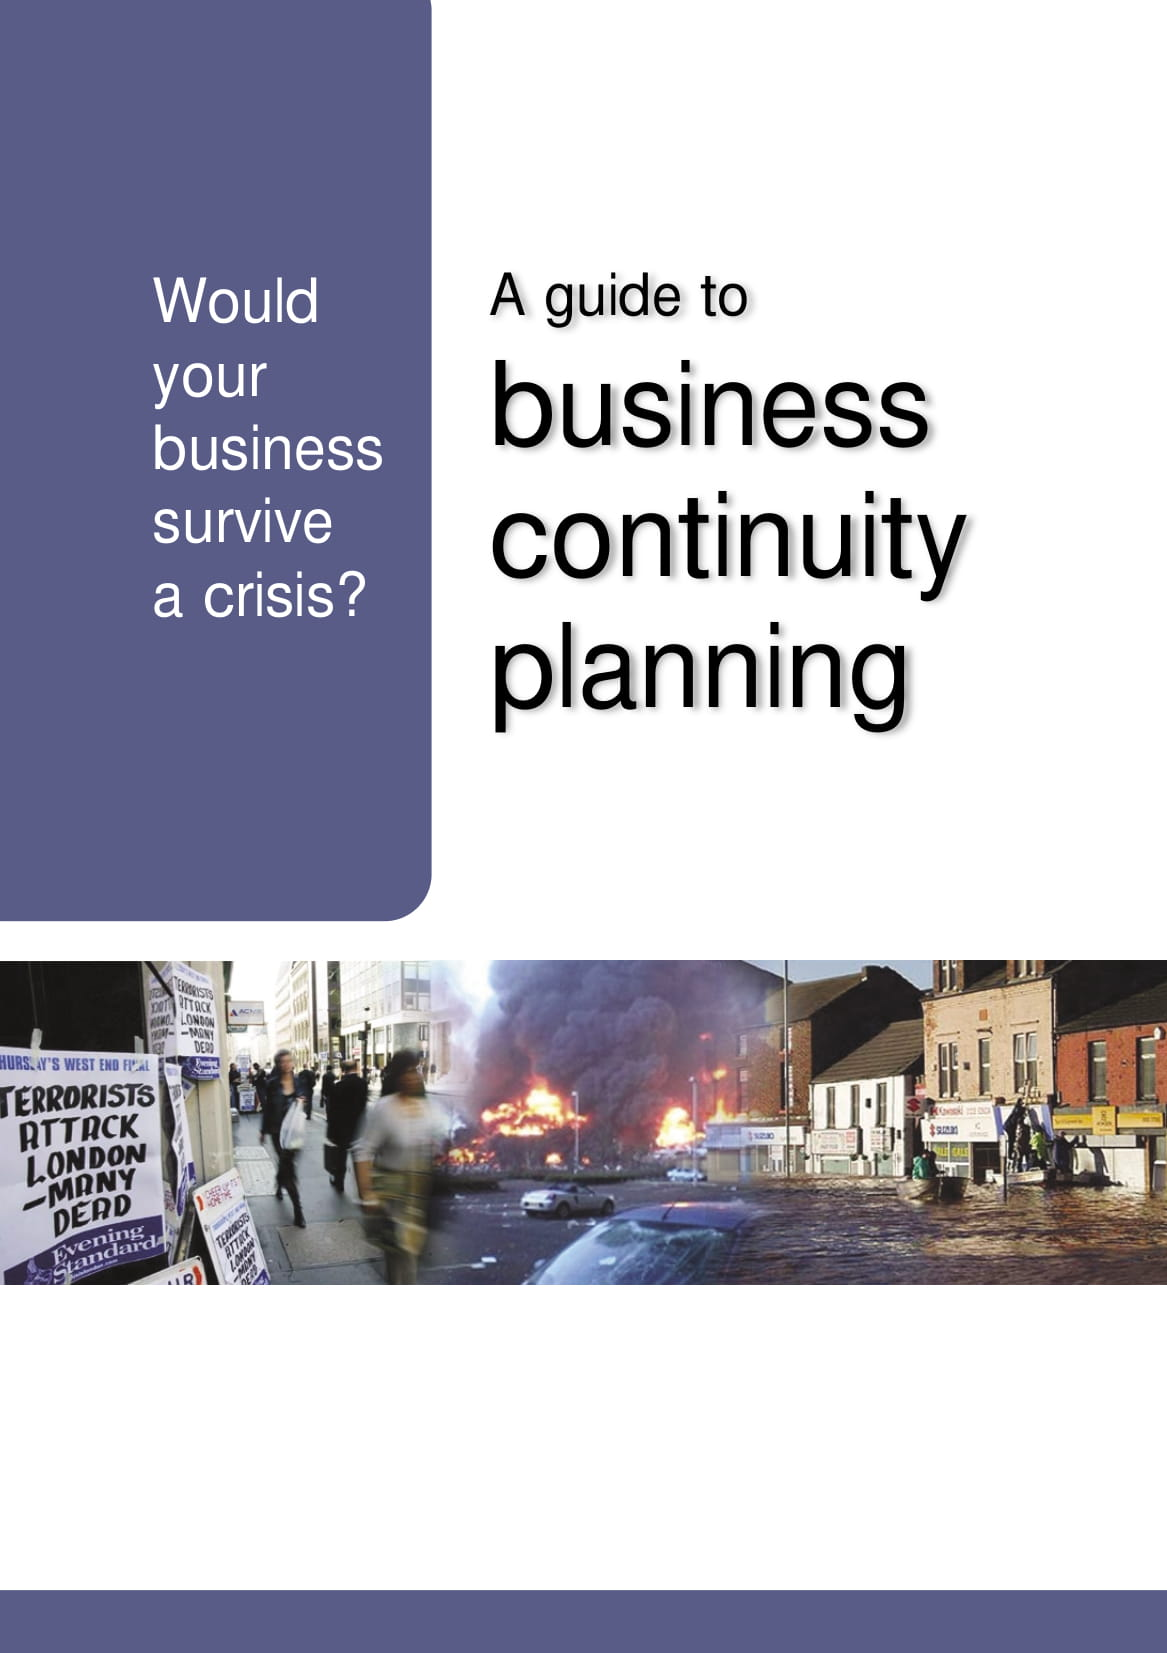 business continuity planning handbook example 01